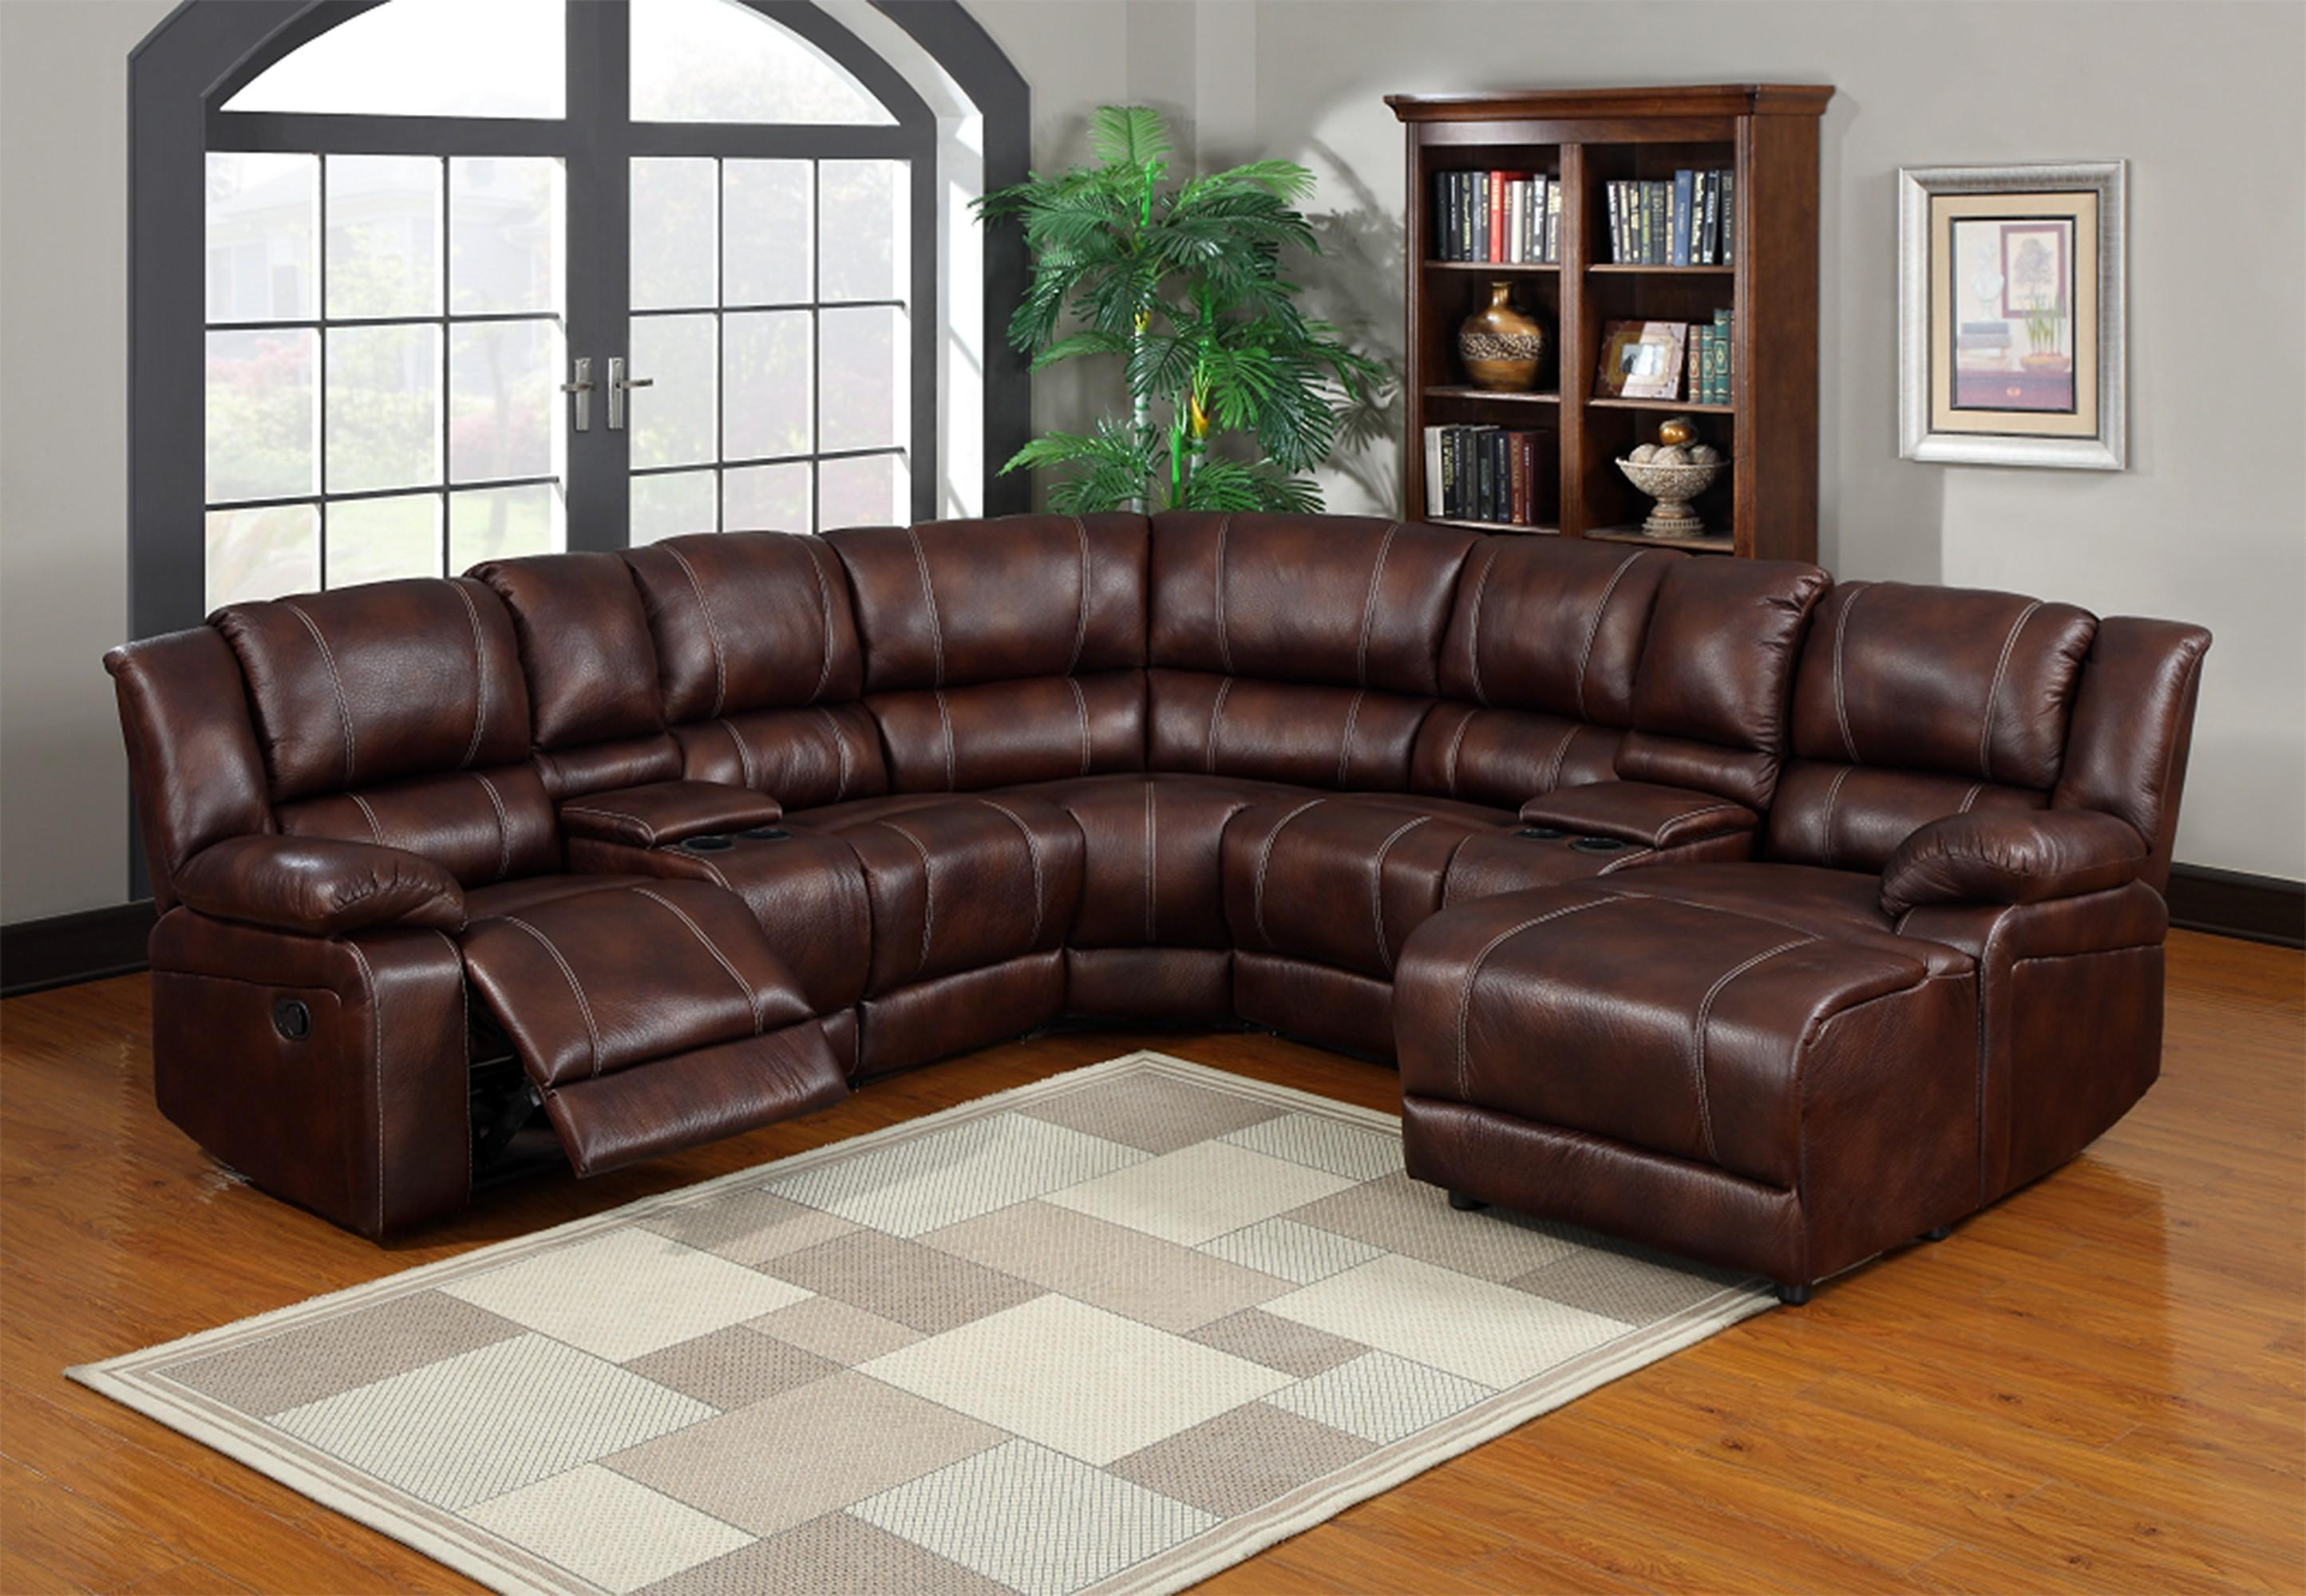 Motion Sofas And Sectionals – Leather Sectional Sofa Pertaining To Motion Sectional Sofas (View 3 of 20)